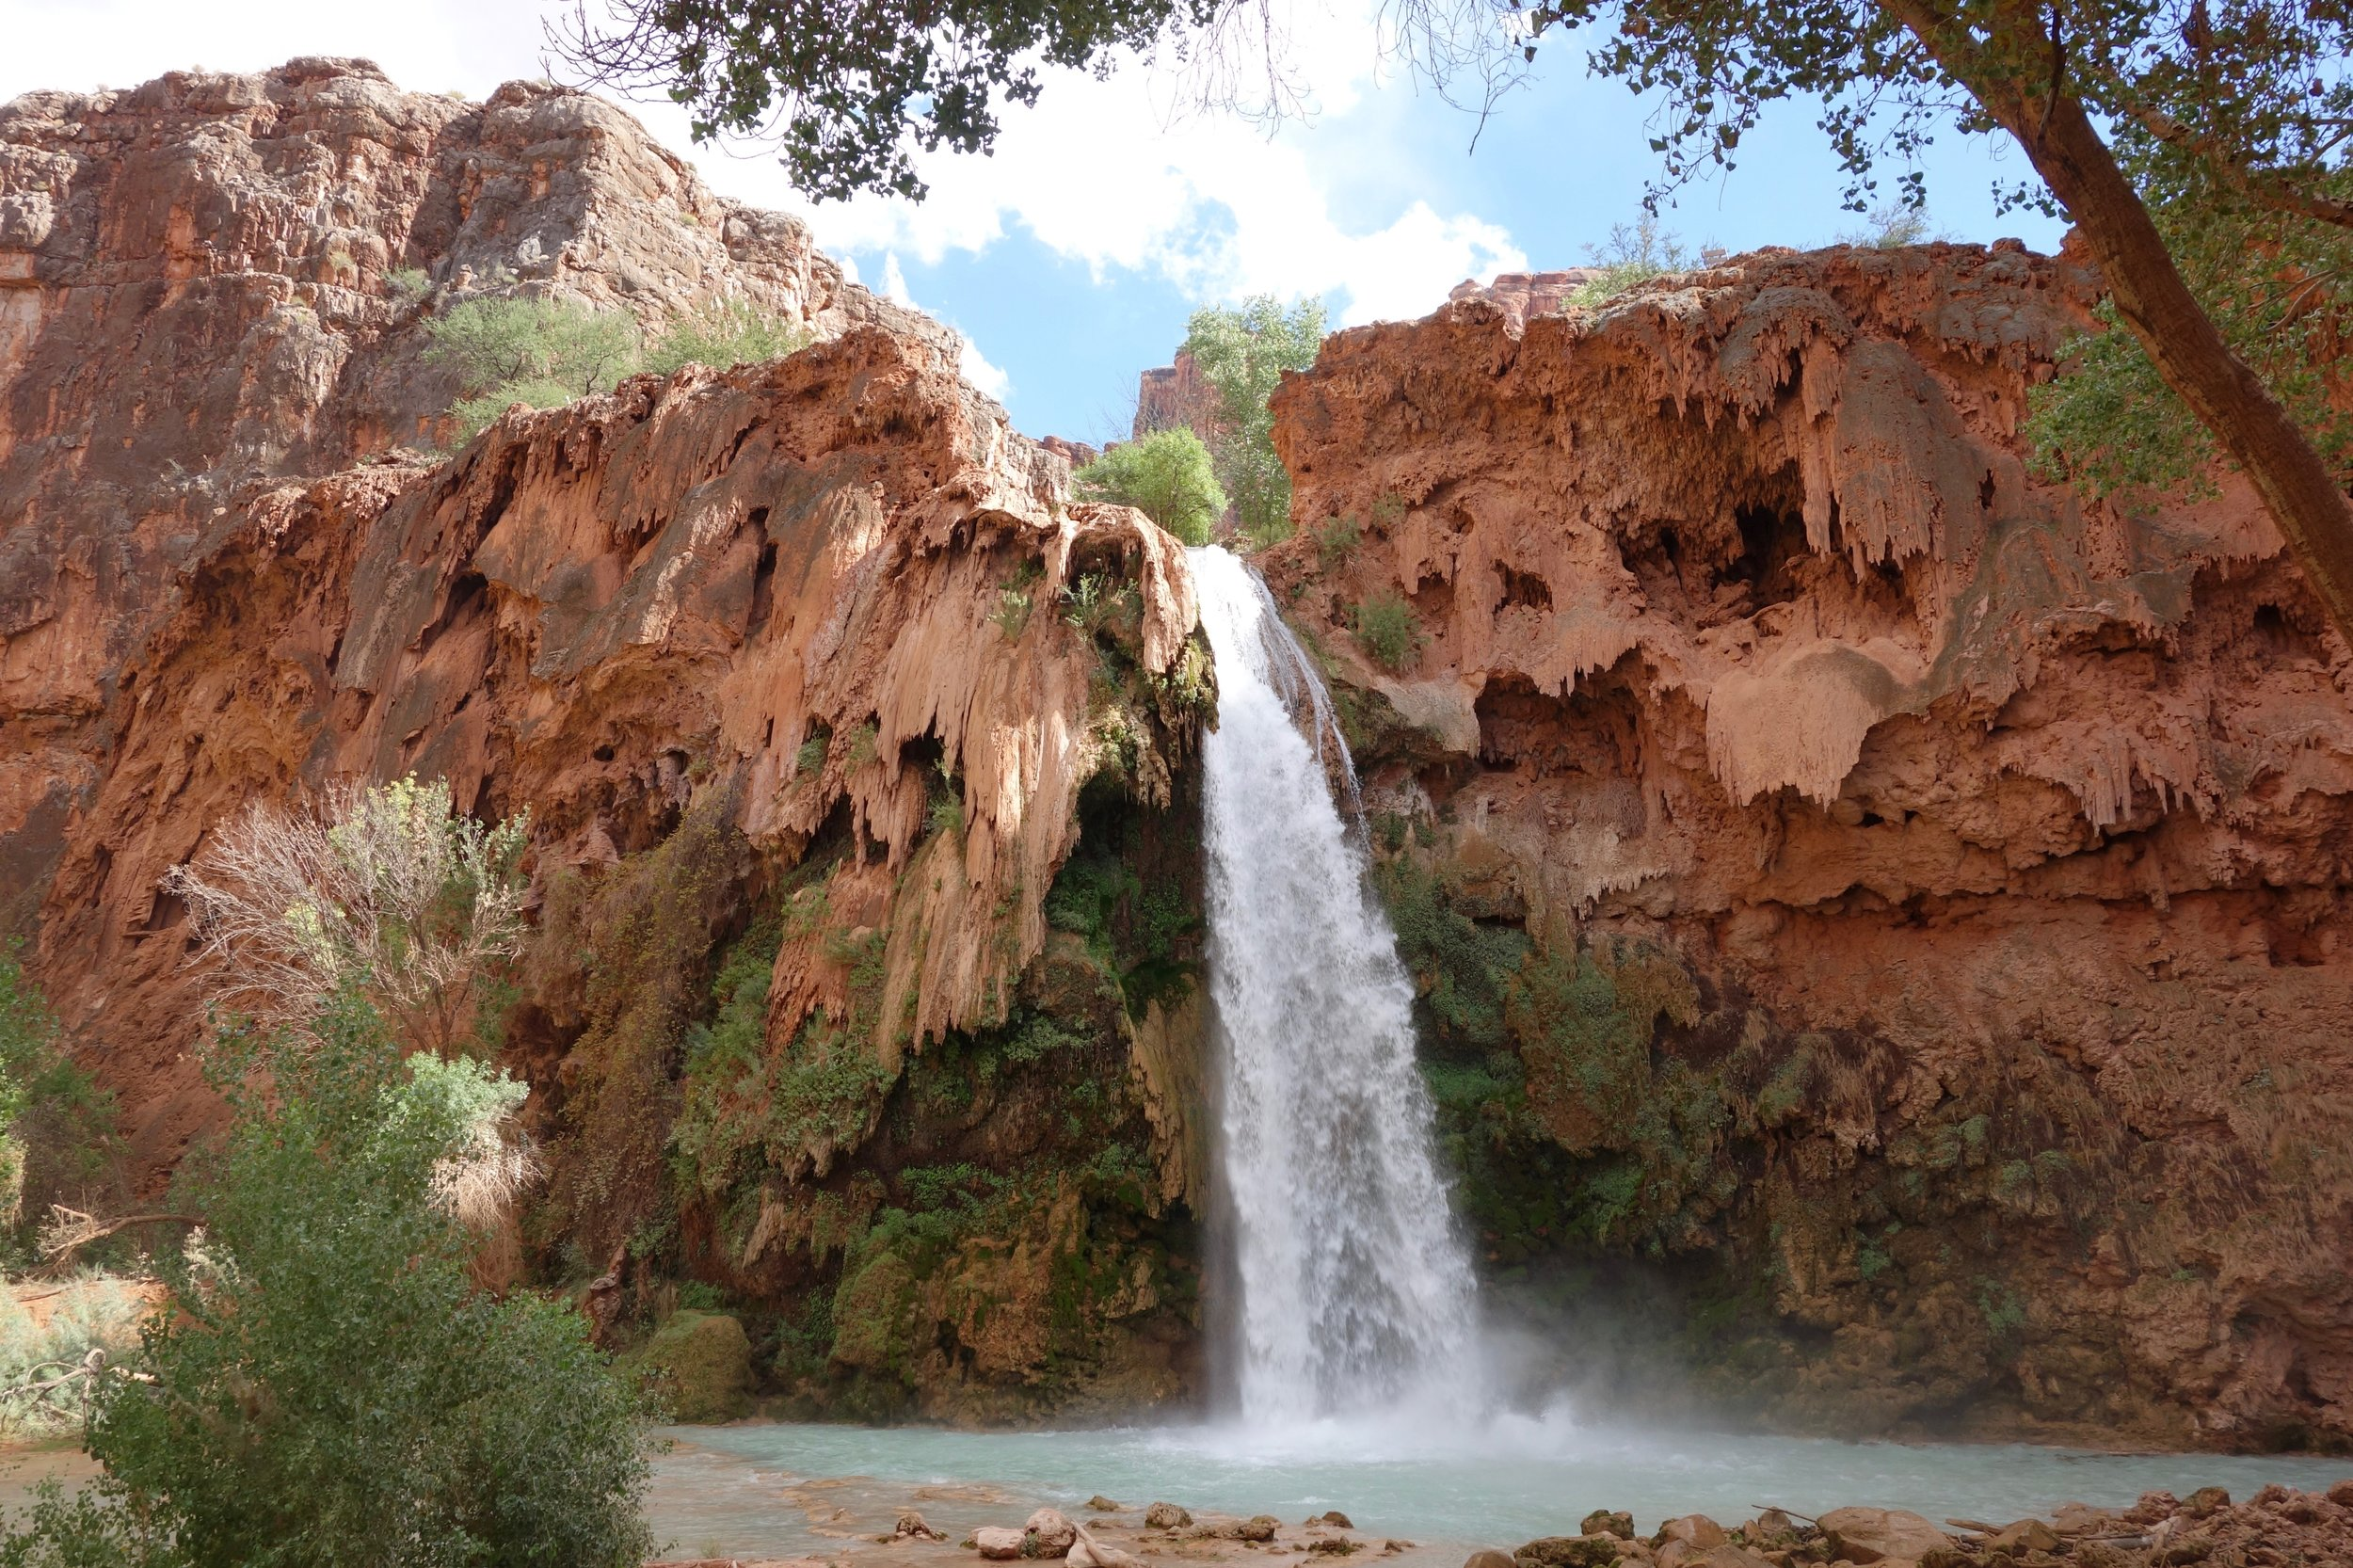 Havasu Falls plunges from the cliff tops into a stunning, deep, turquoise pool.  The surrounding cliffs are cloaked in large sheets, or plates, of brown travertine.